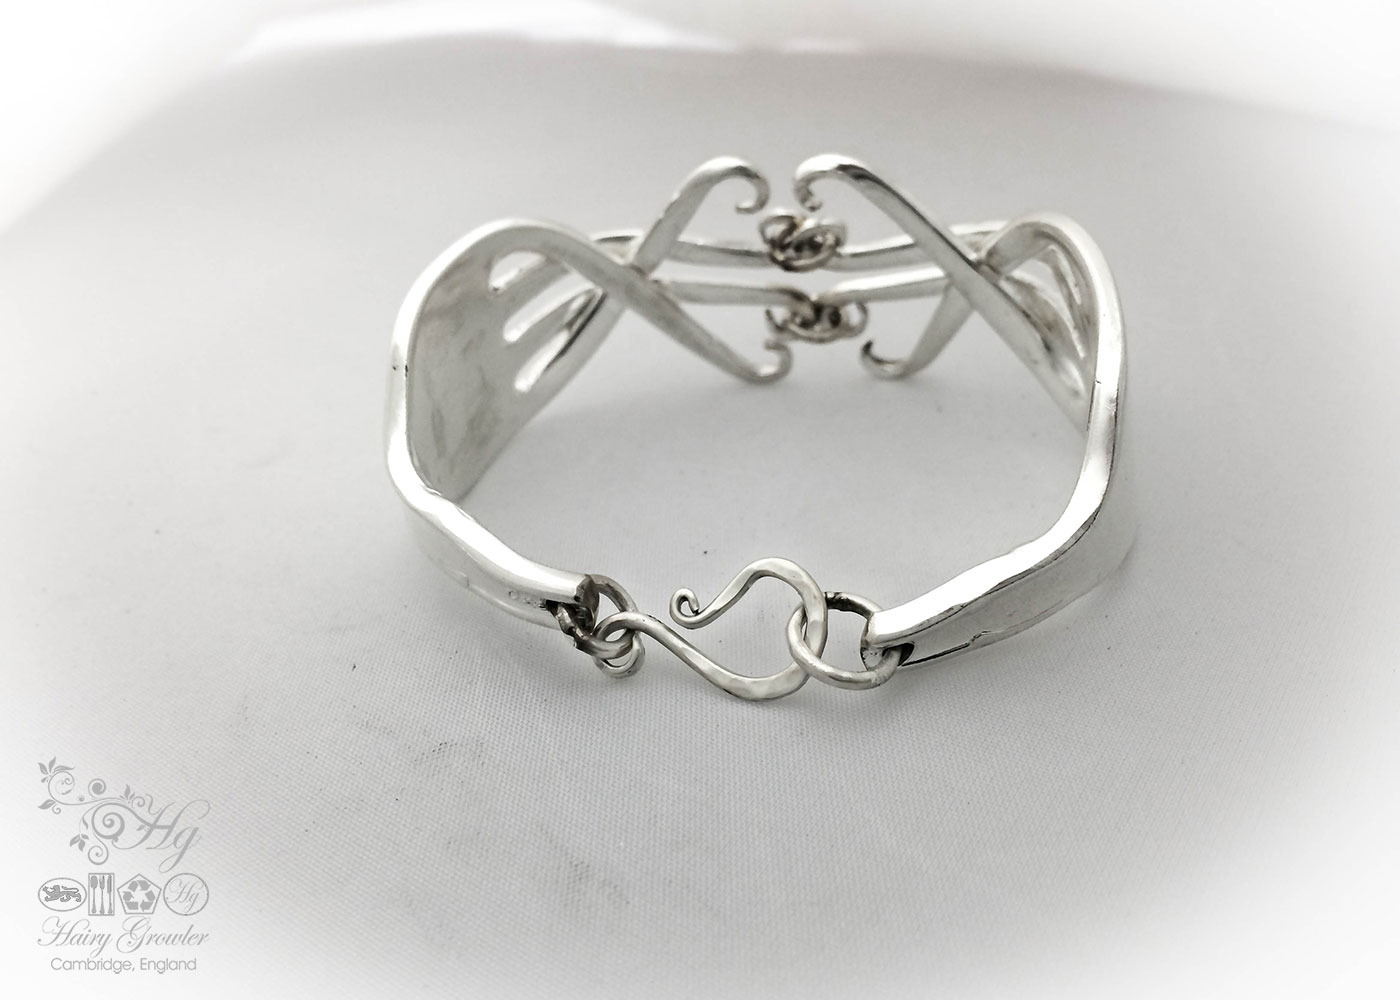 A pair of vintage forks upcycled to form a beautiful handmade recycled flatware fork bracelet